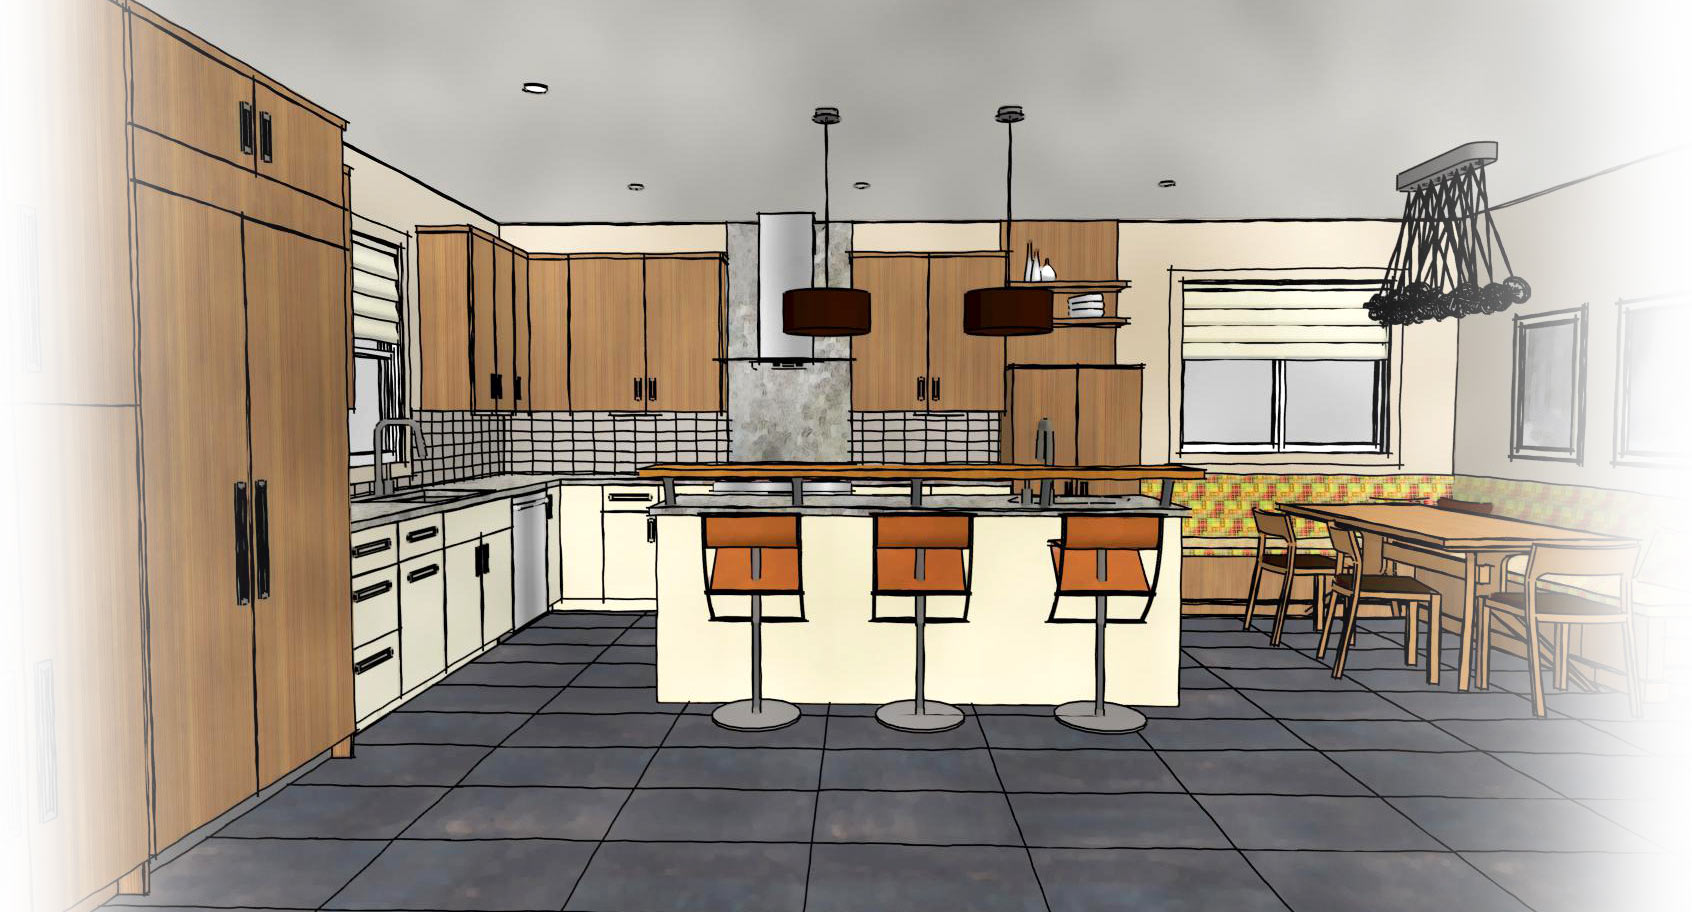 Lovely Kitchen Rendered As A Line Drawing